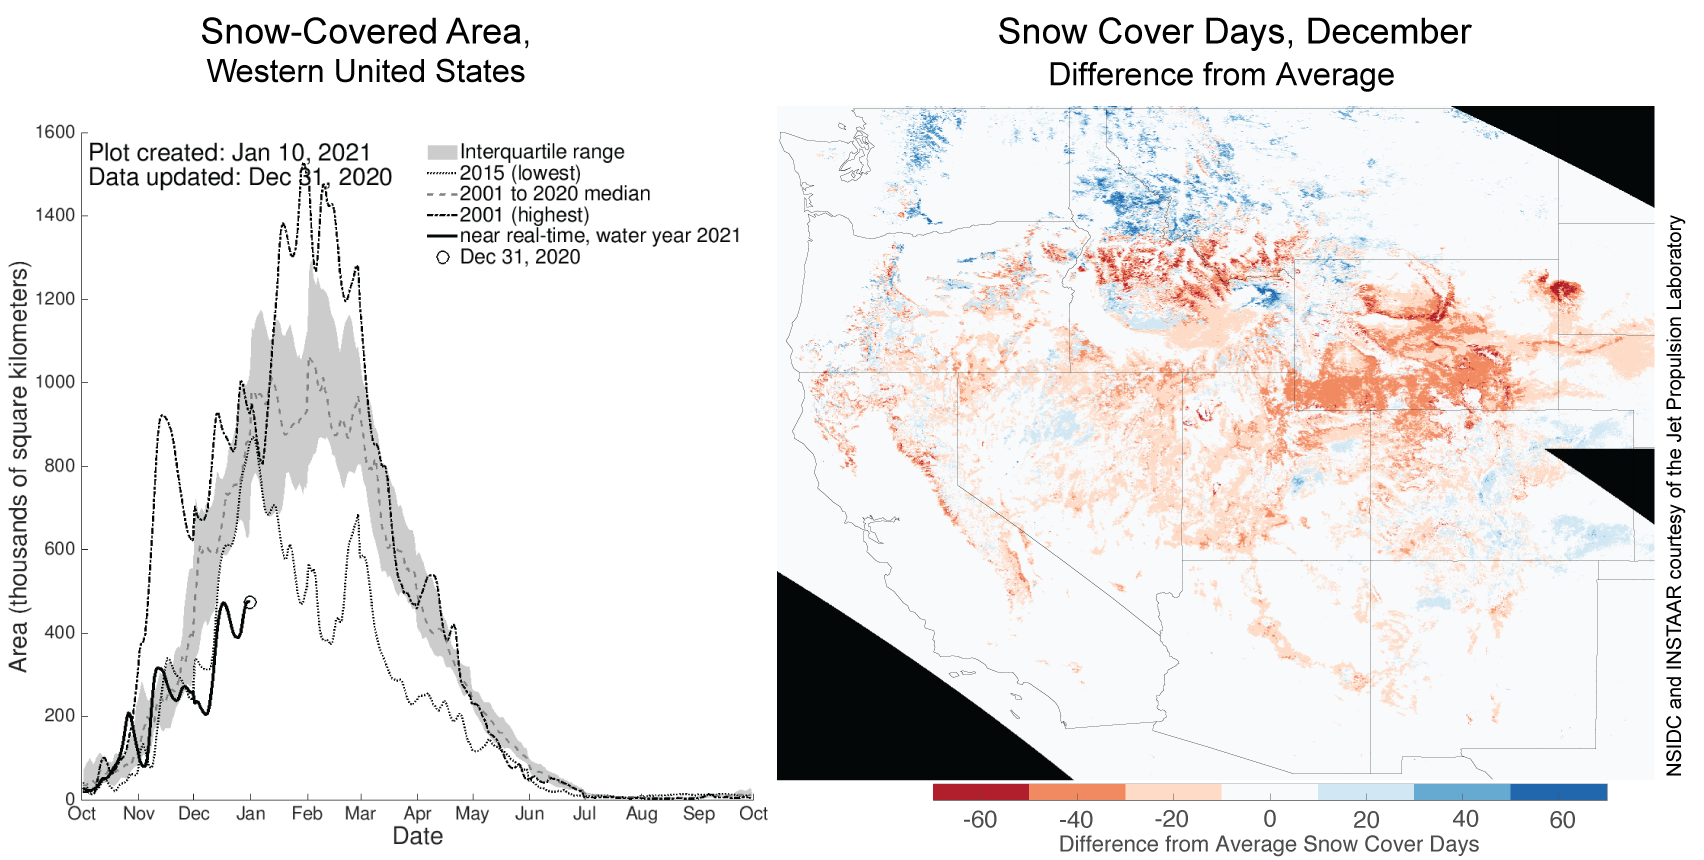 eft plot shows the total snow-covered area over the western United States; map on the right shows the differences between the average year's snow cover percent and this year's snow cover percent for December